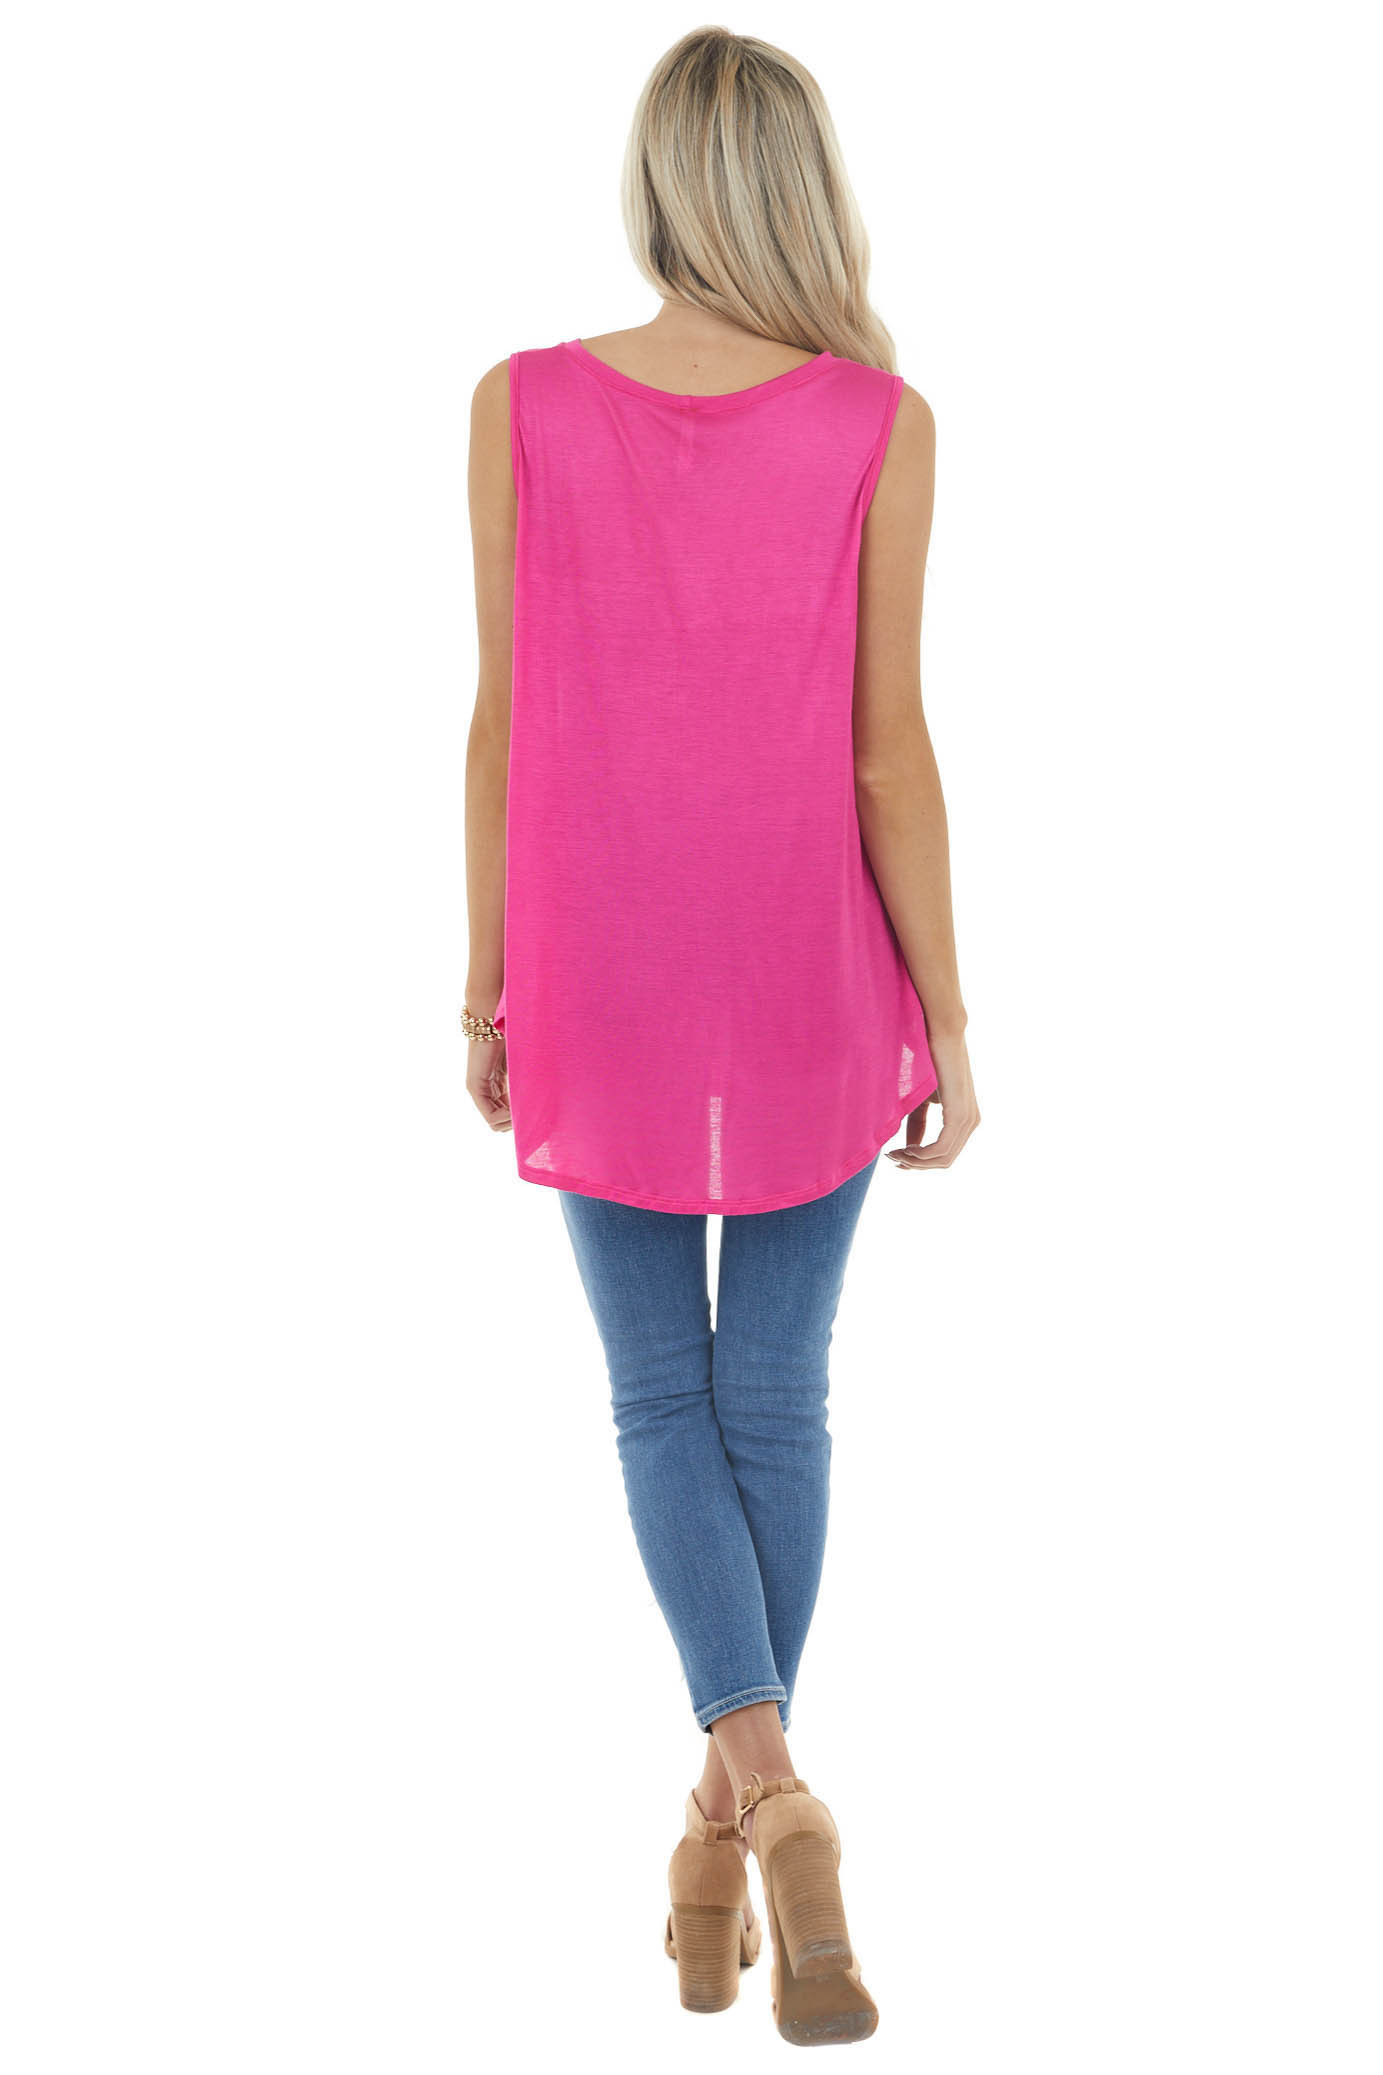 Magenta Sleeveless Stretchy Knit Top with Cut Out Detail